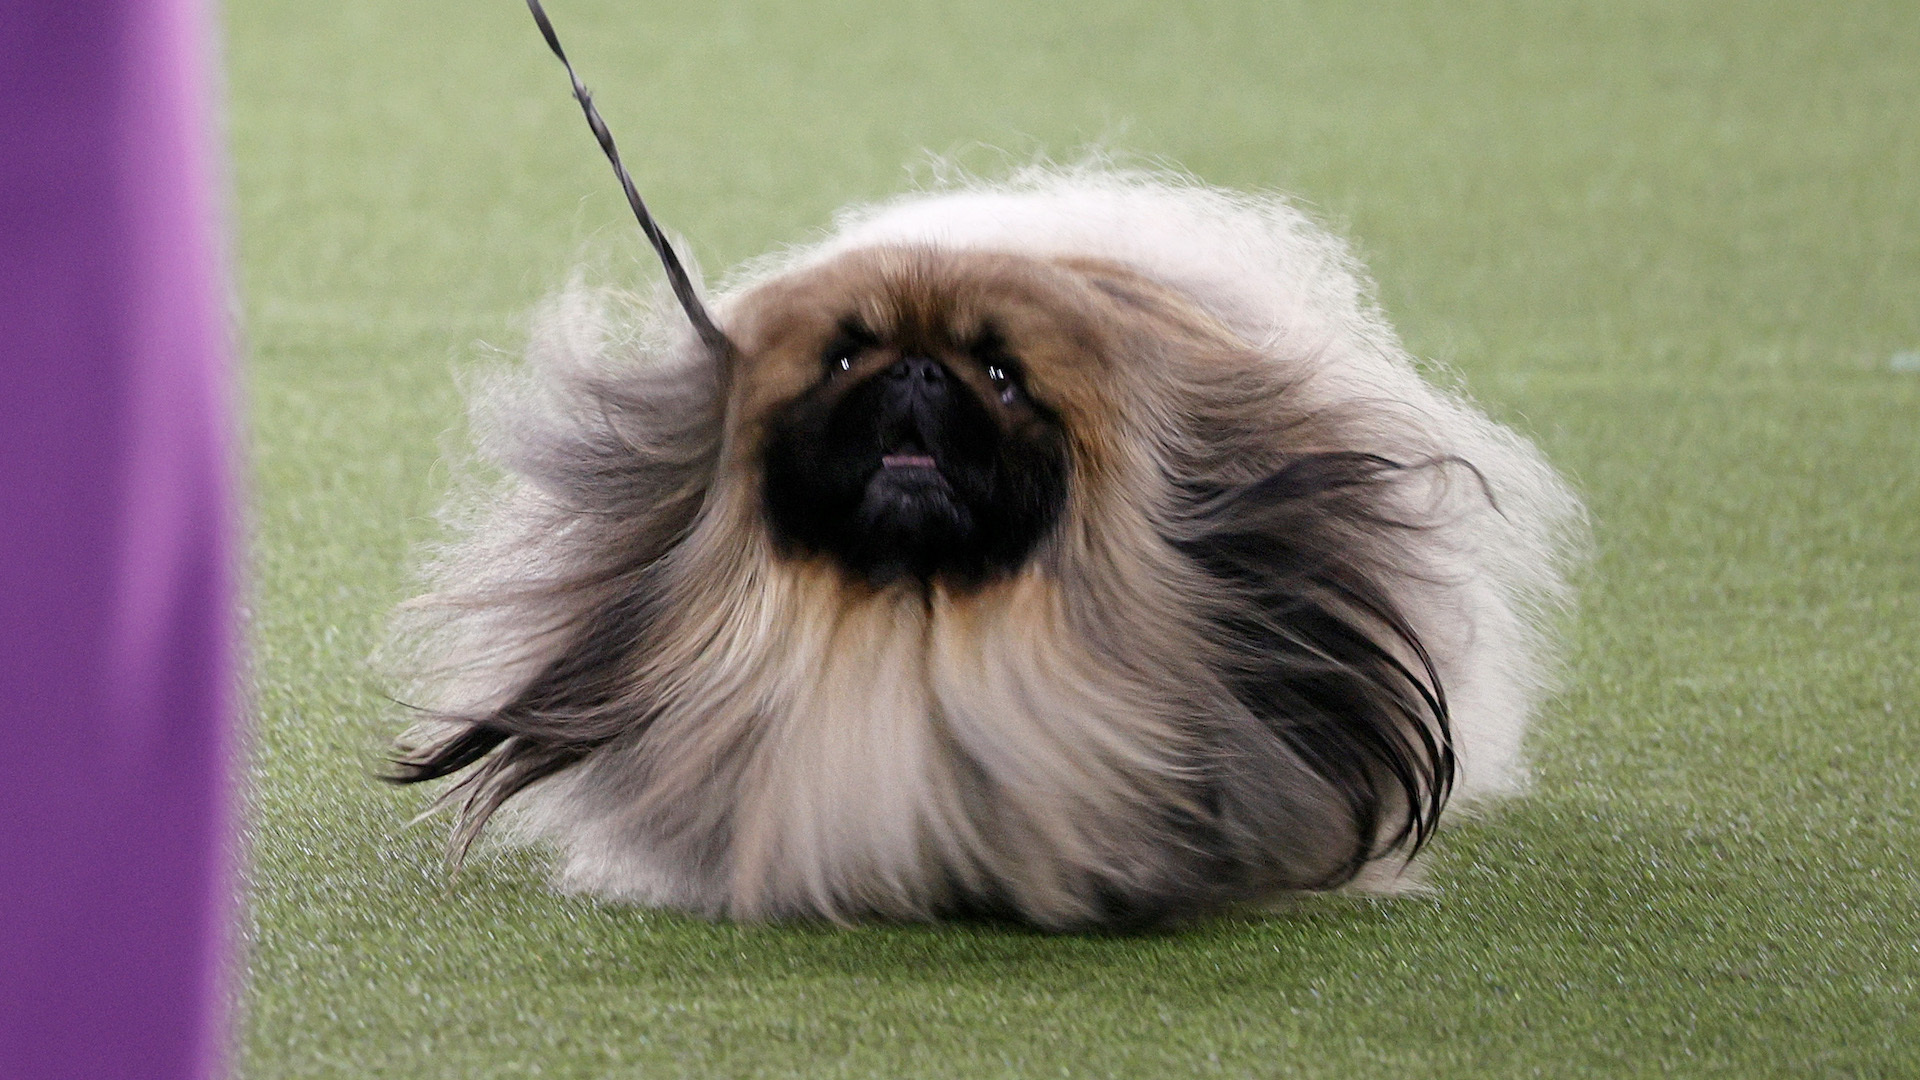 A Pekingese named Wasabi won Westminster's Best in Show and Twitter didn't approve